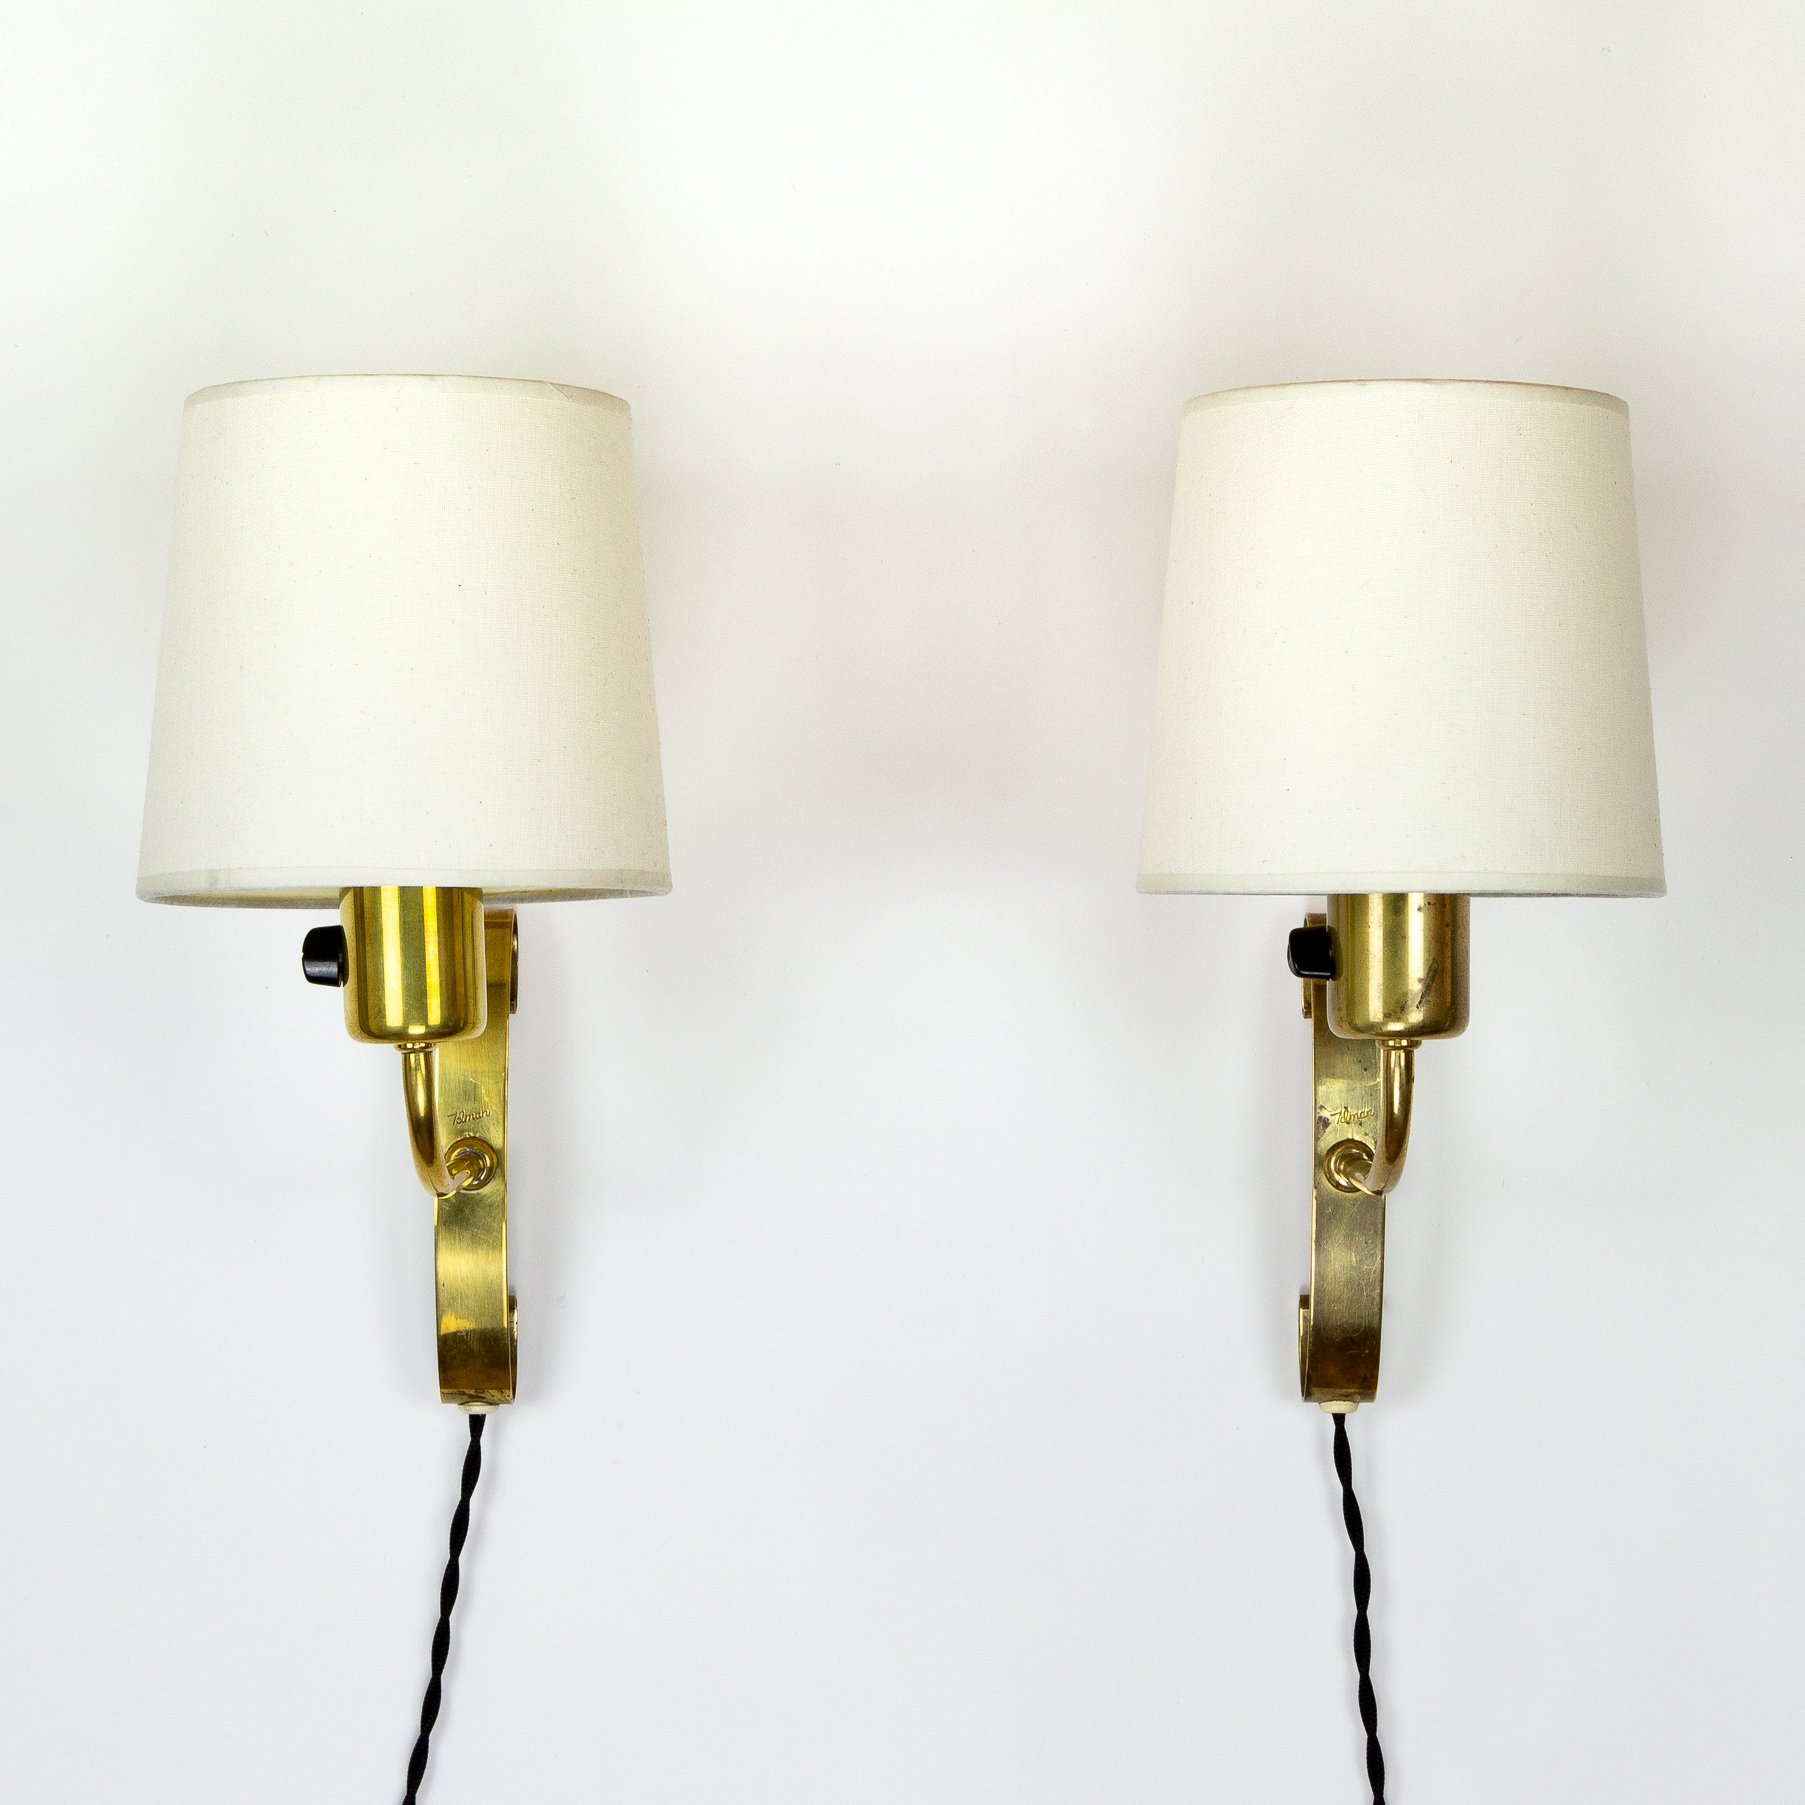 Pair Of Brass Wall Sconces By Maria Lindemann For Idman Finland 1950s 137224